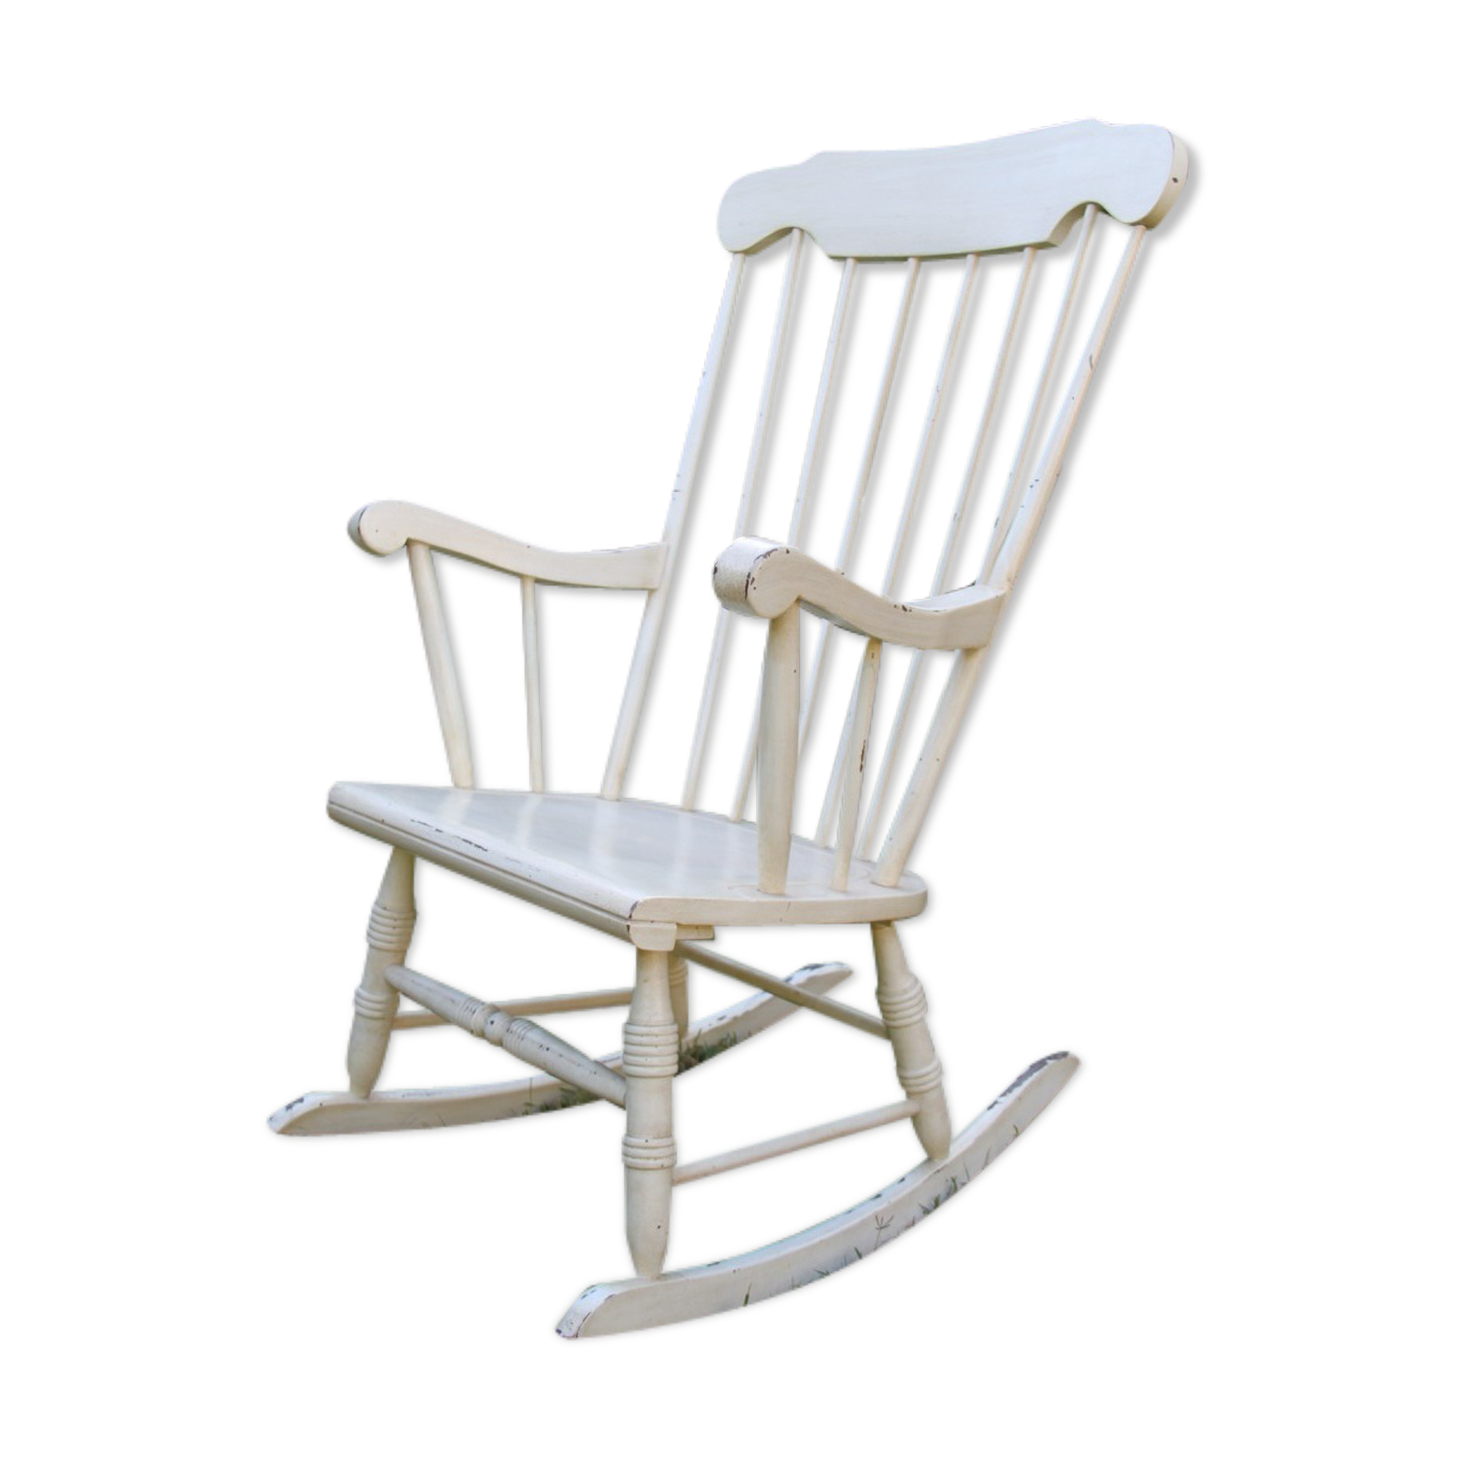 rocking chair occasion airchair seat rocking chair miniature dollhouse furniture wooden rocker. Black Bedroom Furniture Sets. Home Design Ideas